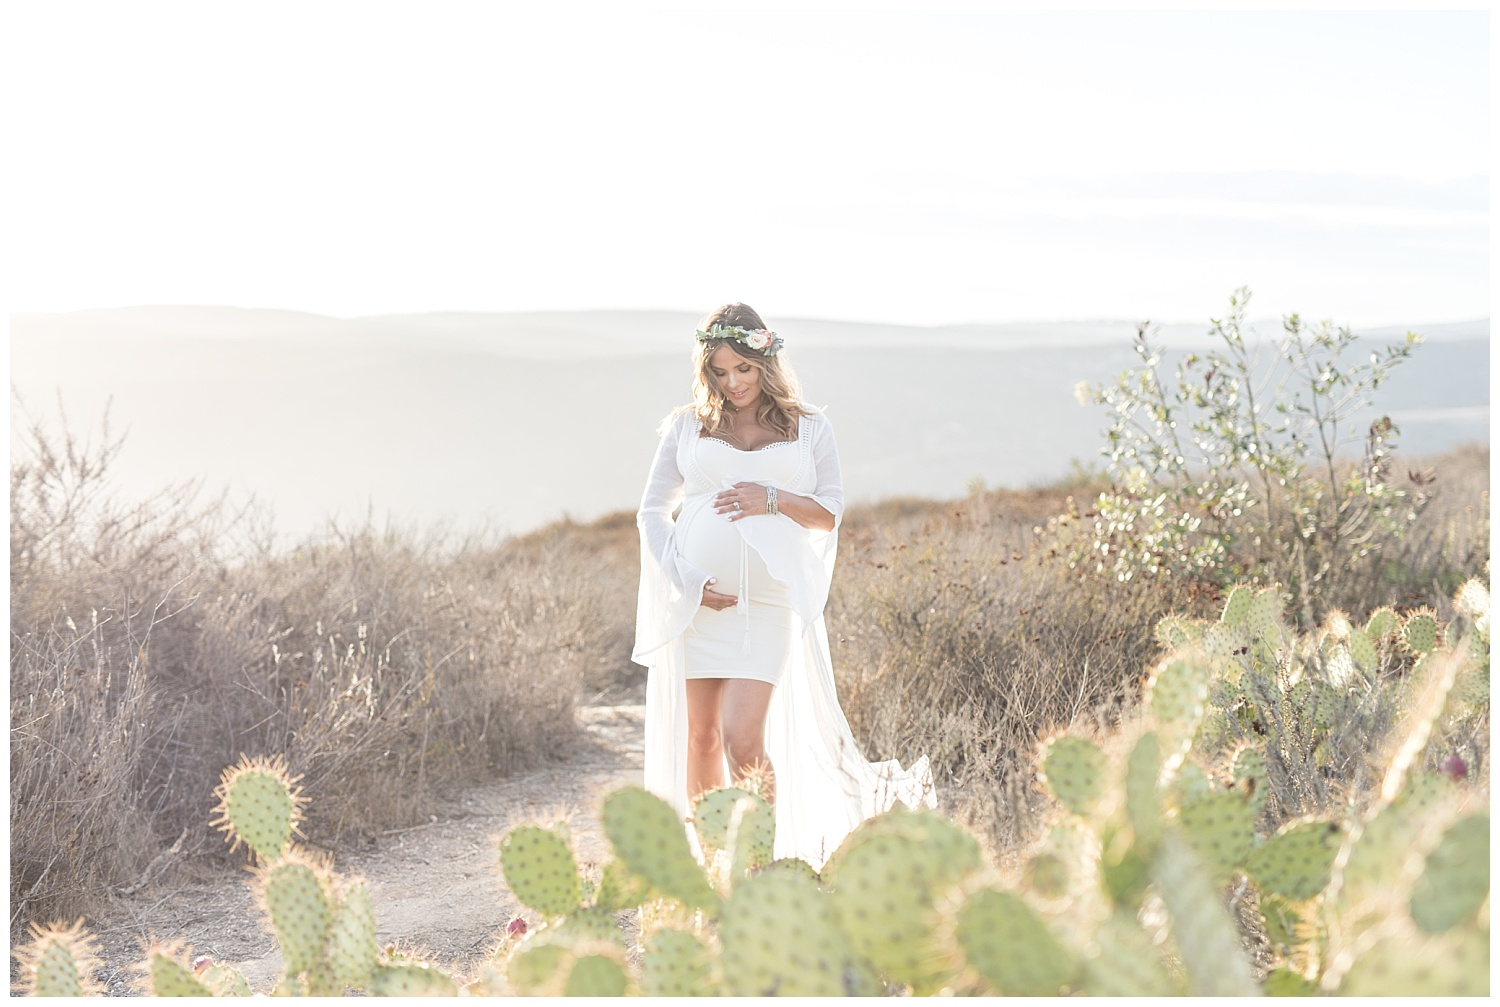 ashley - laguna beach, orange county hiking trail - maternity-0034